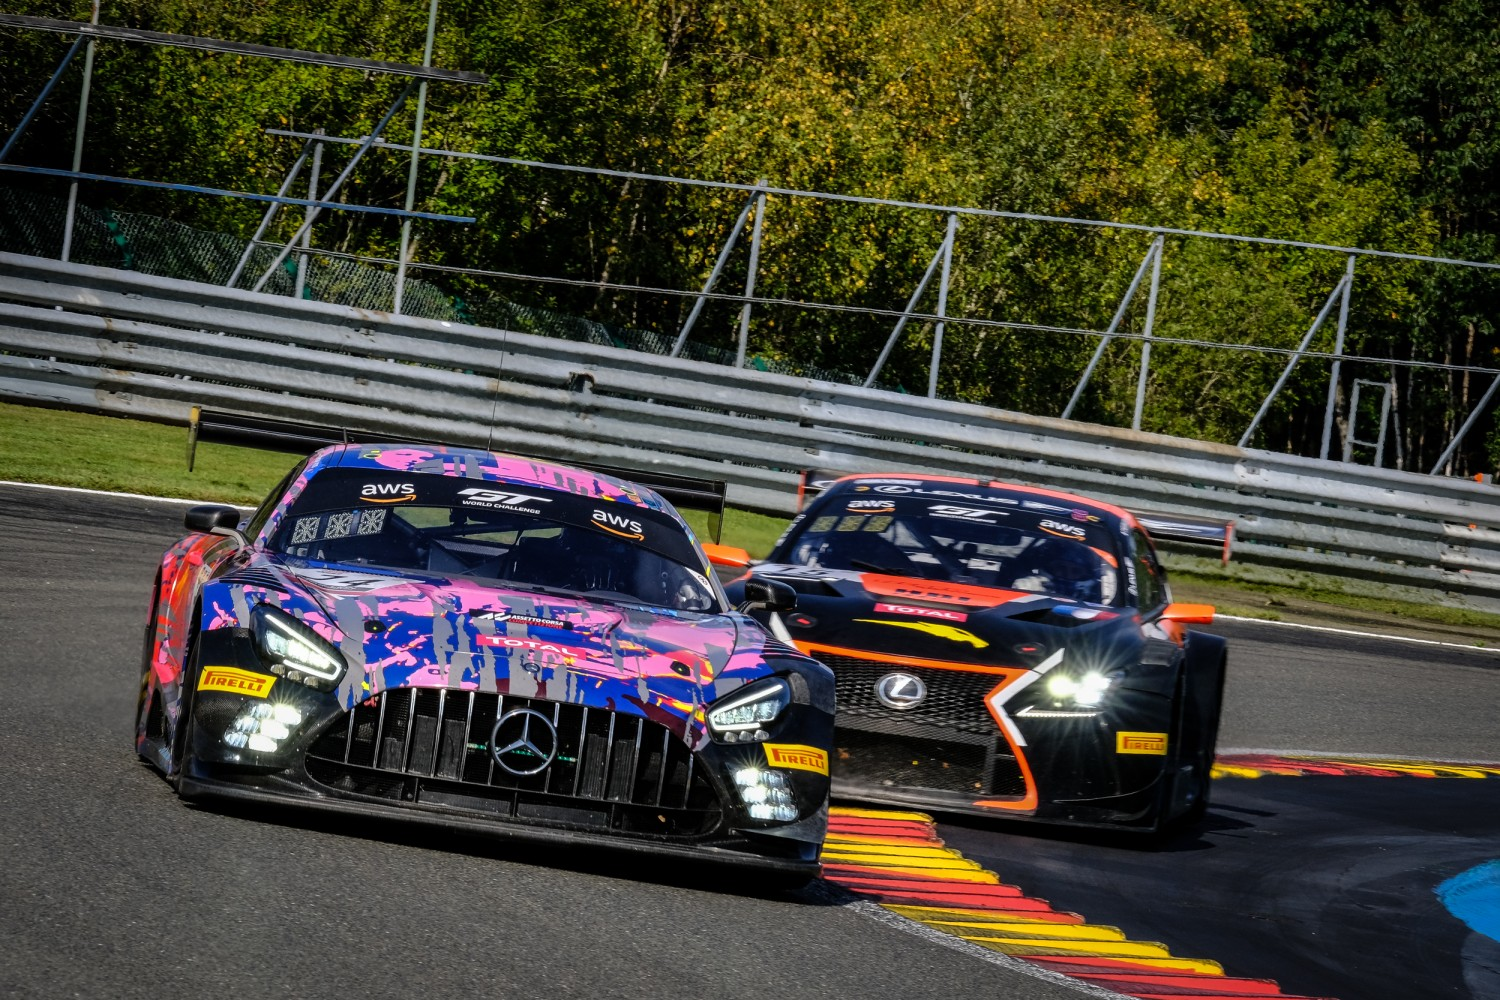 Class glory up for grabs at 2020 Total 24 Hours of Spa